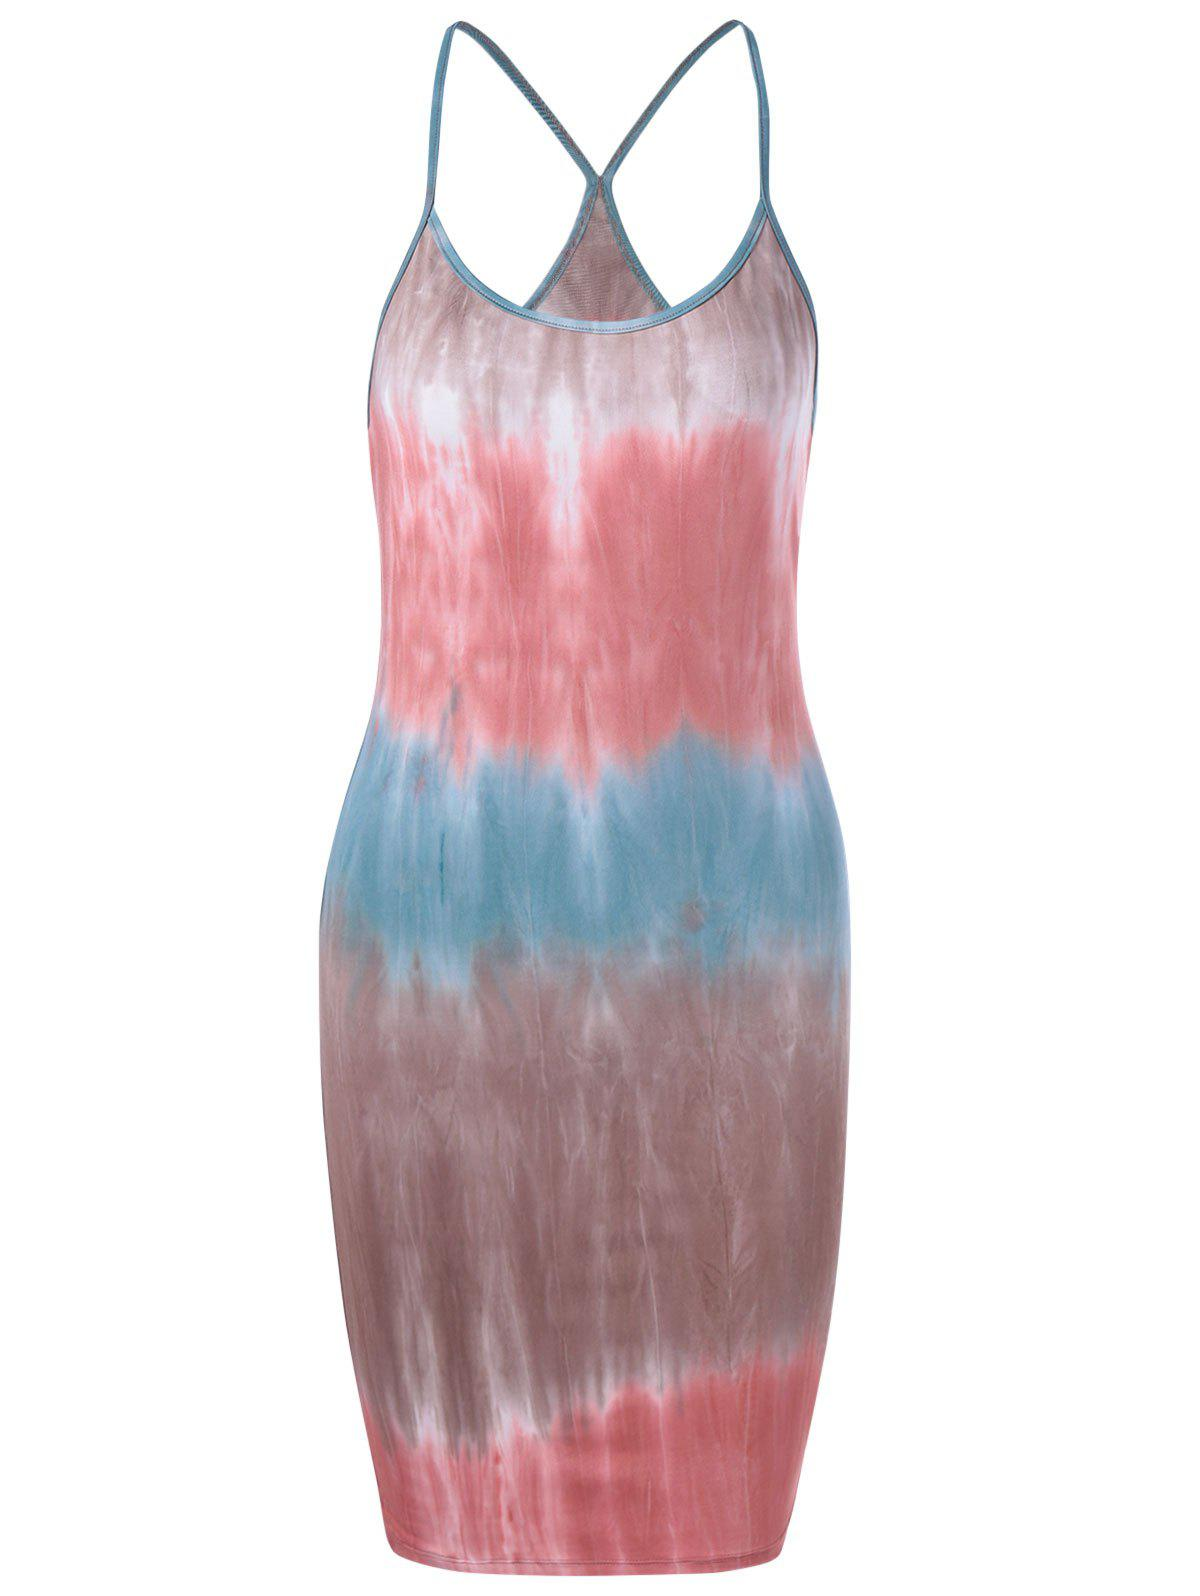 Contracted Knitting Tie-Dye Dress For Women